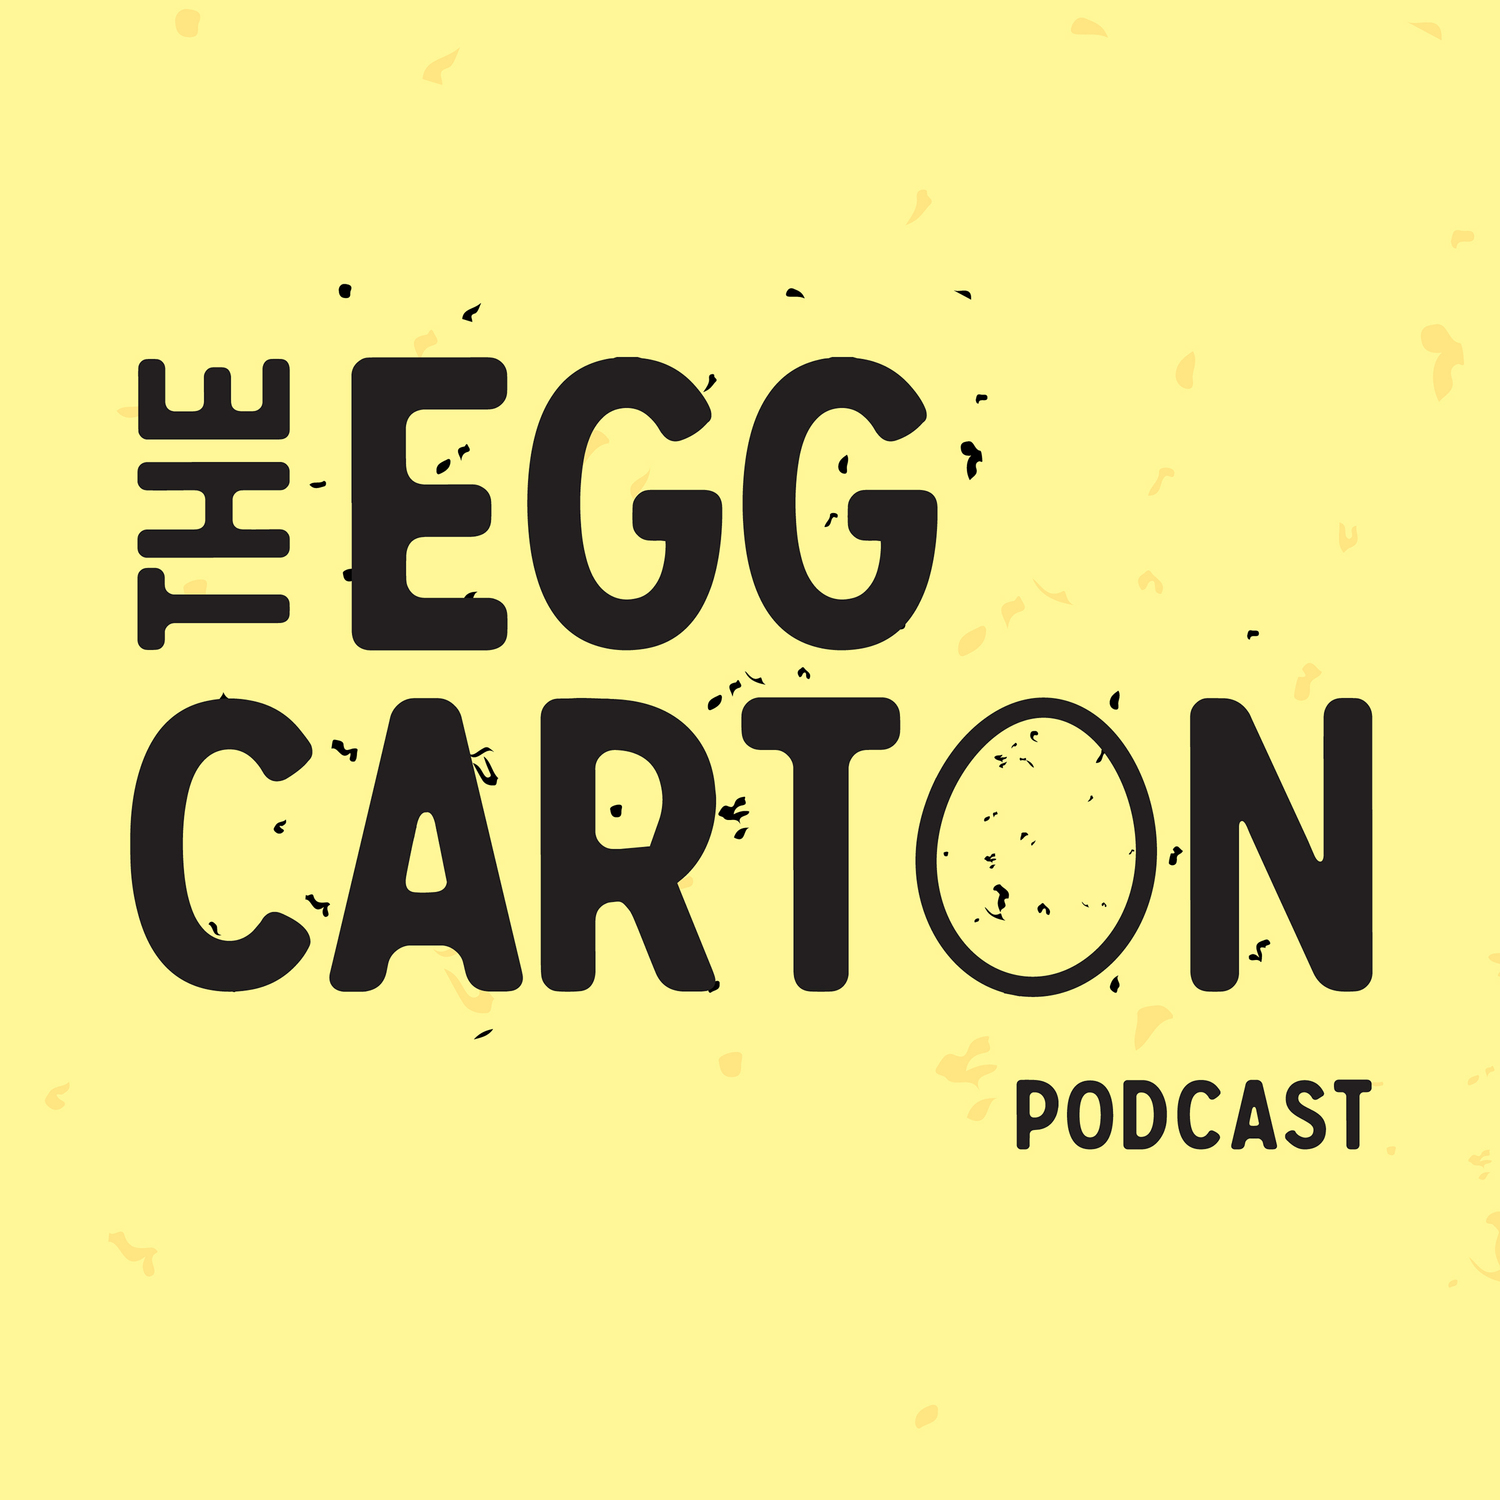 The Egg Carton